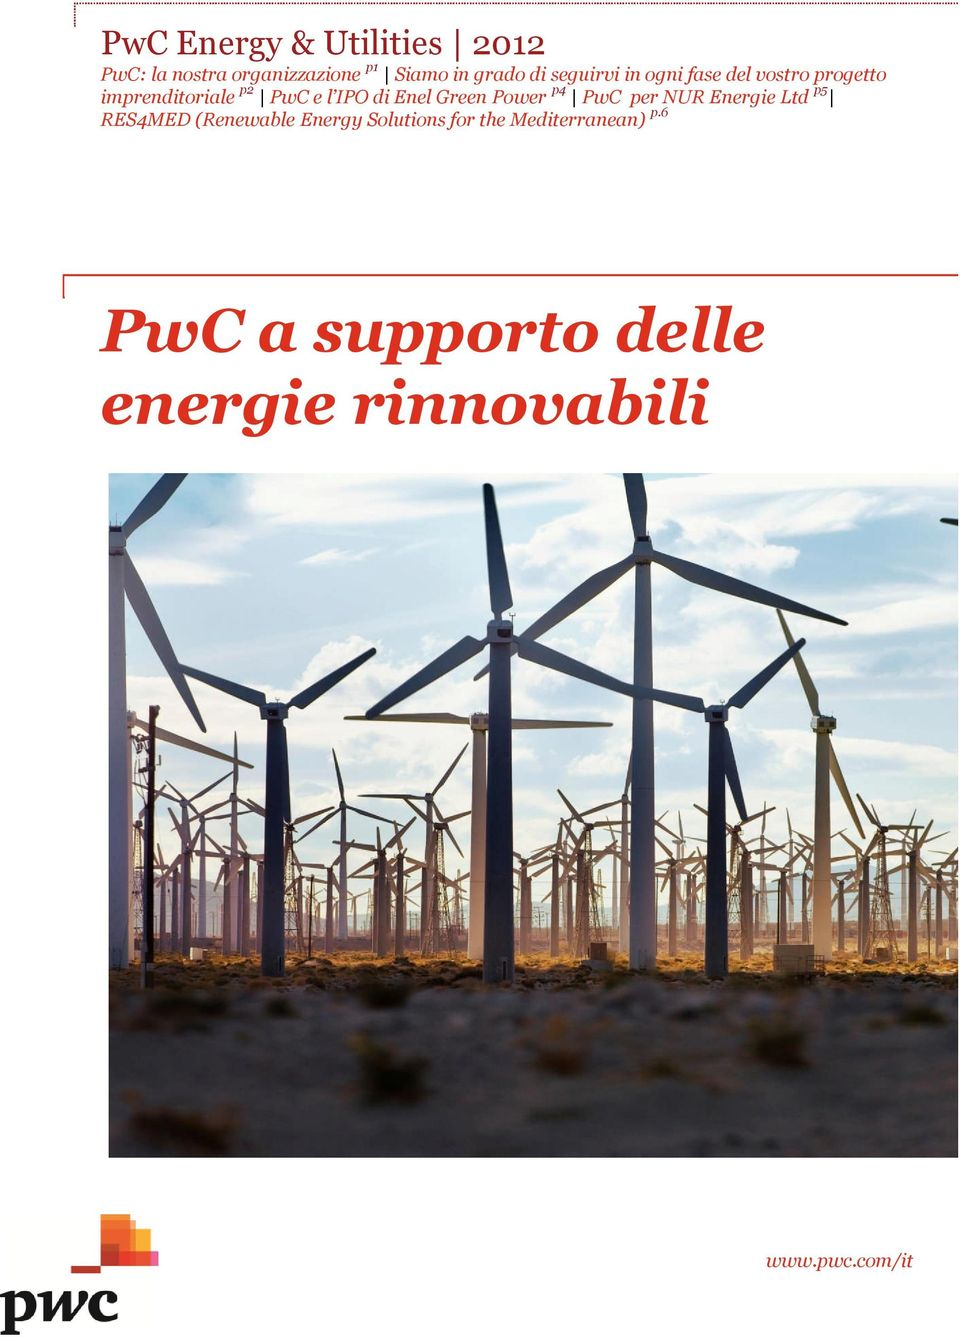 Enel Green Power p4 PwC per NUR Energie Ltd p5 RES4MED (Renewable Energy